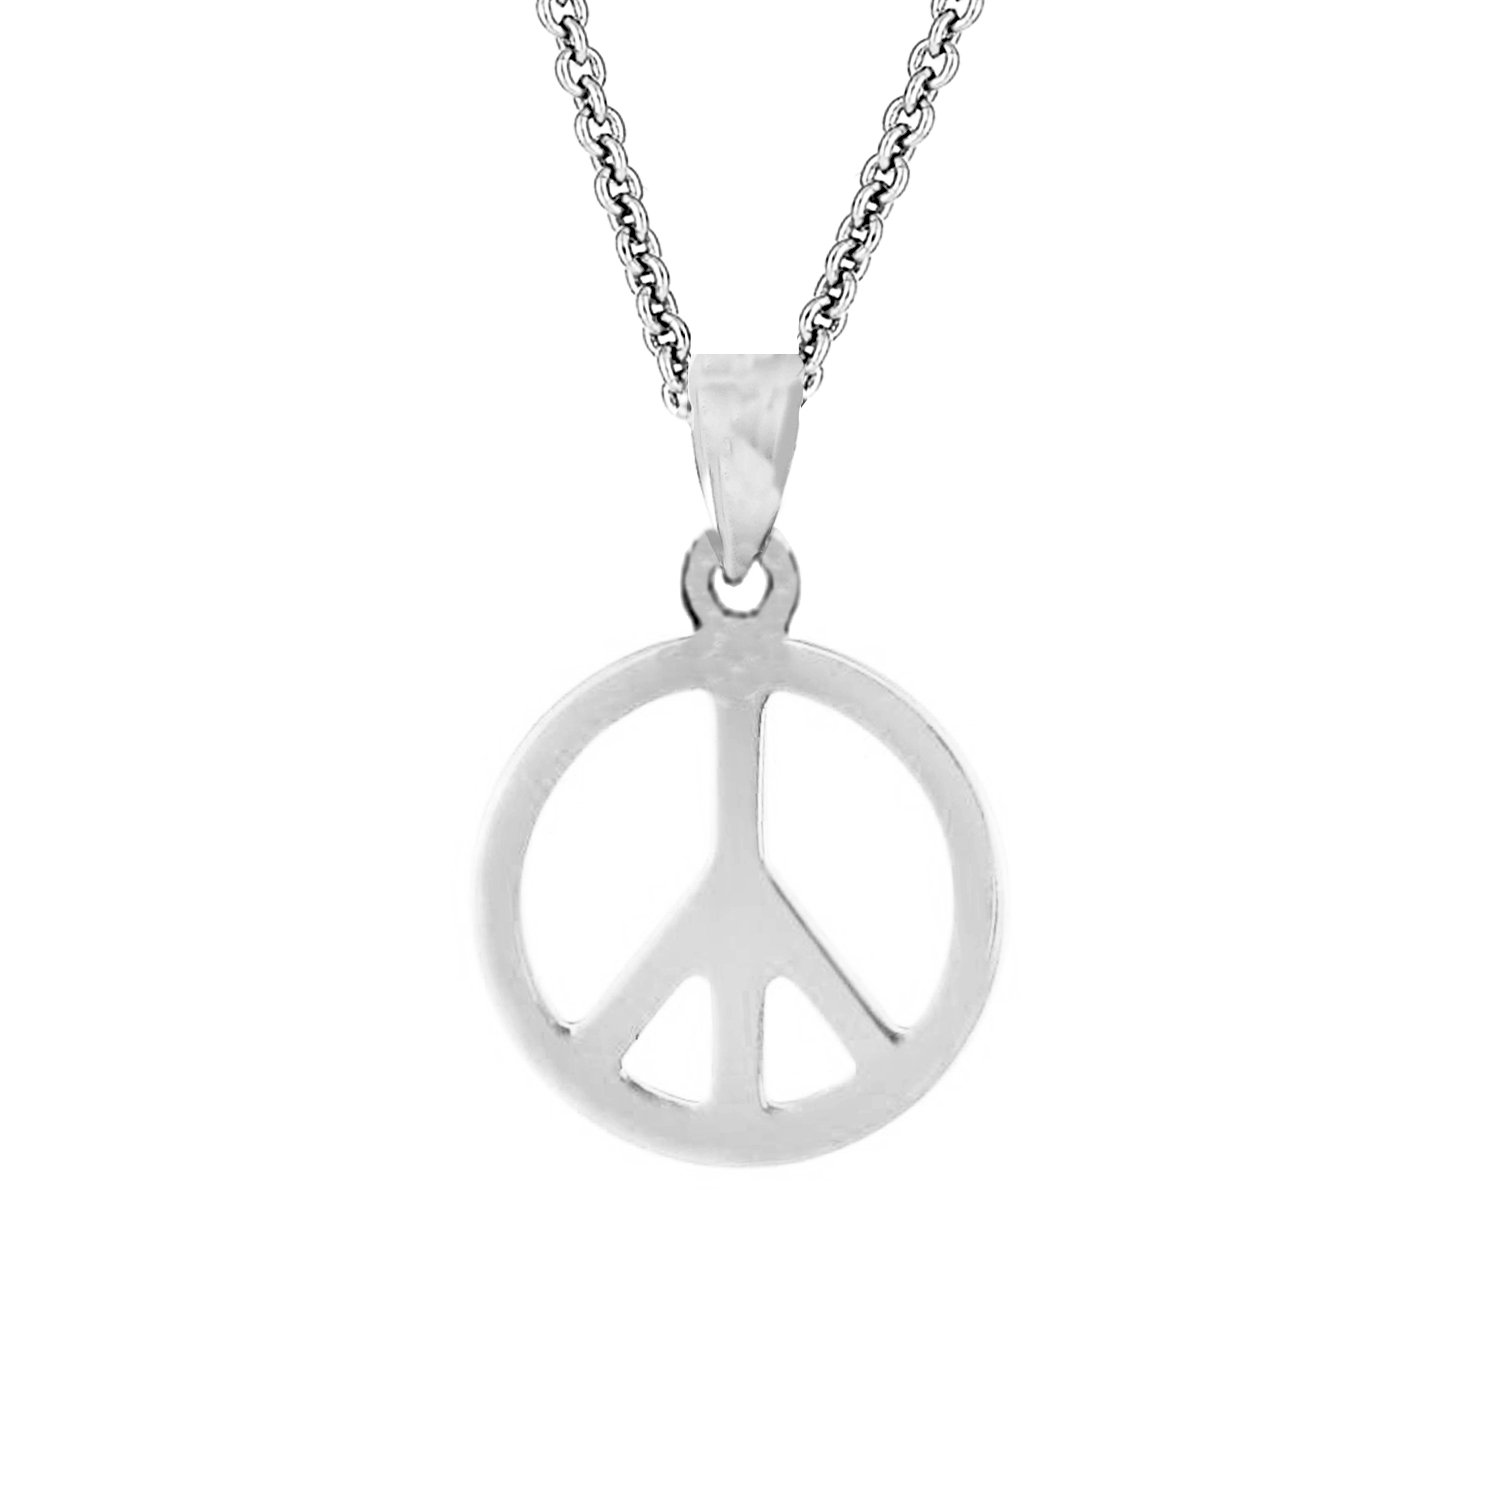 Amazon sterling silver shiny peace sign charm pendant necklace amazon sterling silver shiny peace sign charm pendant necklace 18 inches jewelry buycottarizona Gallery